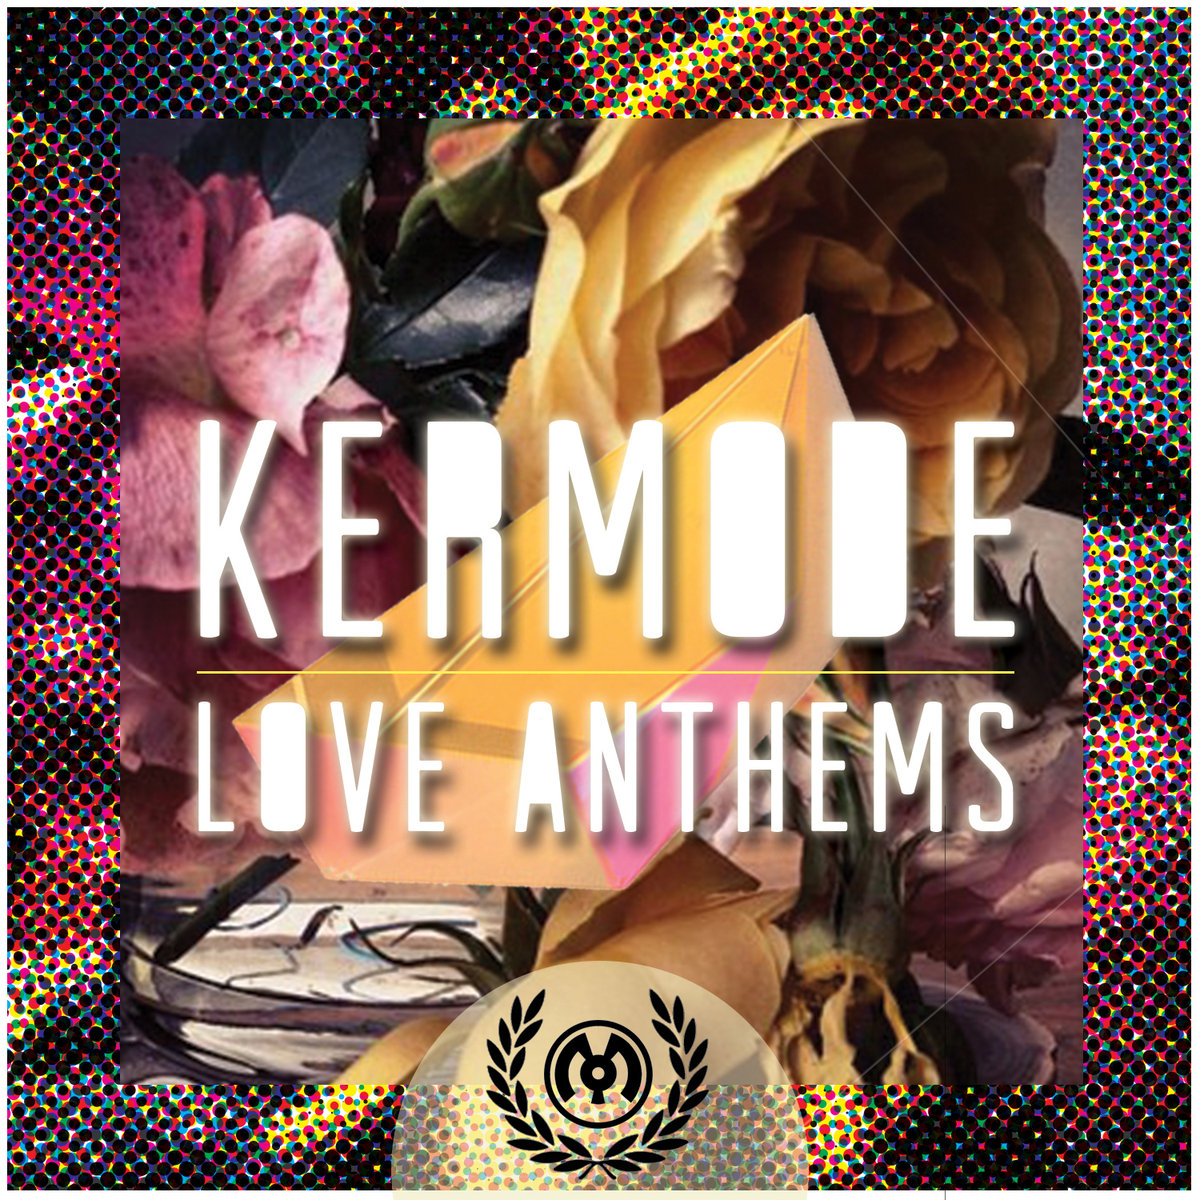 Kermode - The Hero Of Old @ 'Love Anthems' album (electronic, dubstep)